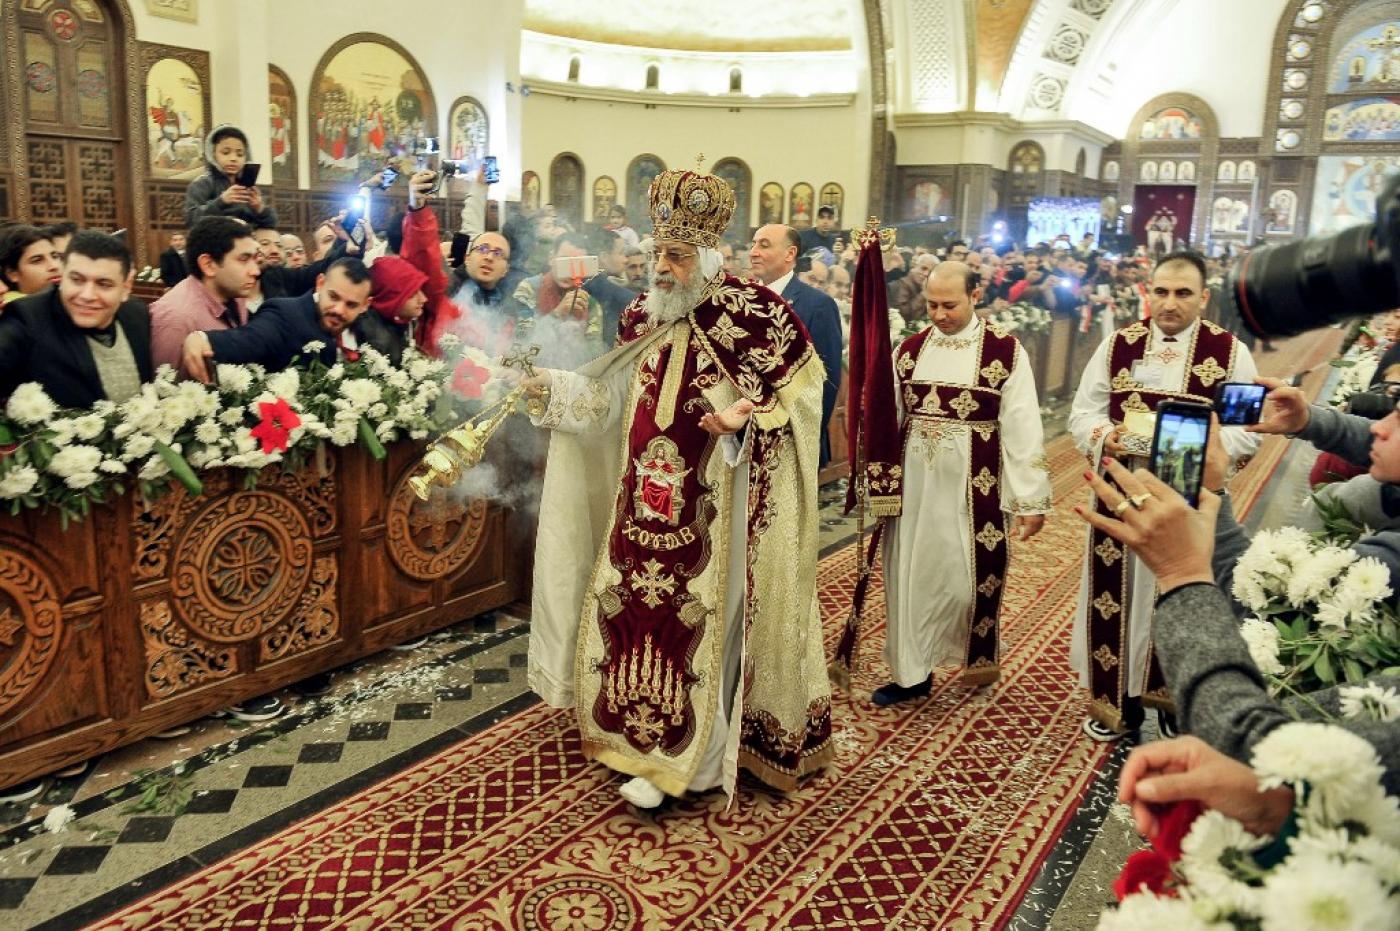 Christmas 2020 Christian What's different about Coptic Christmas? | Middle East Eye